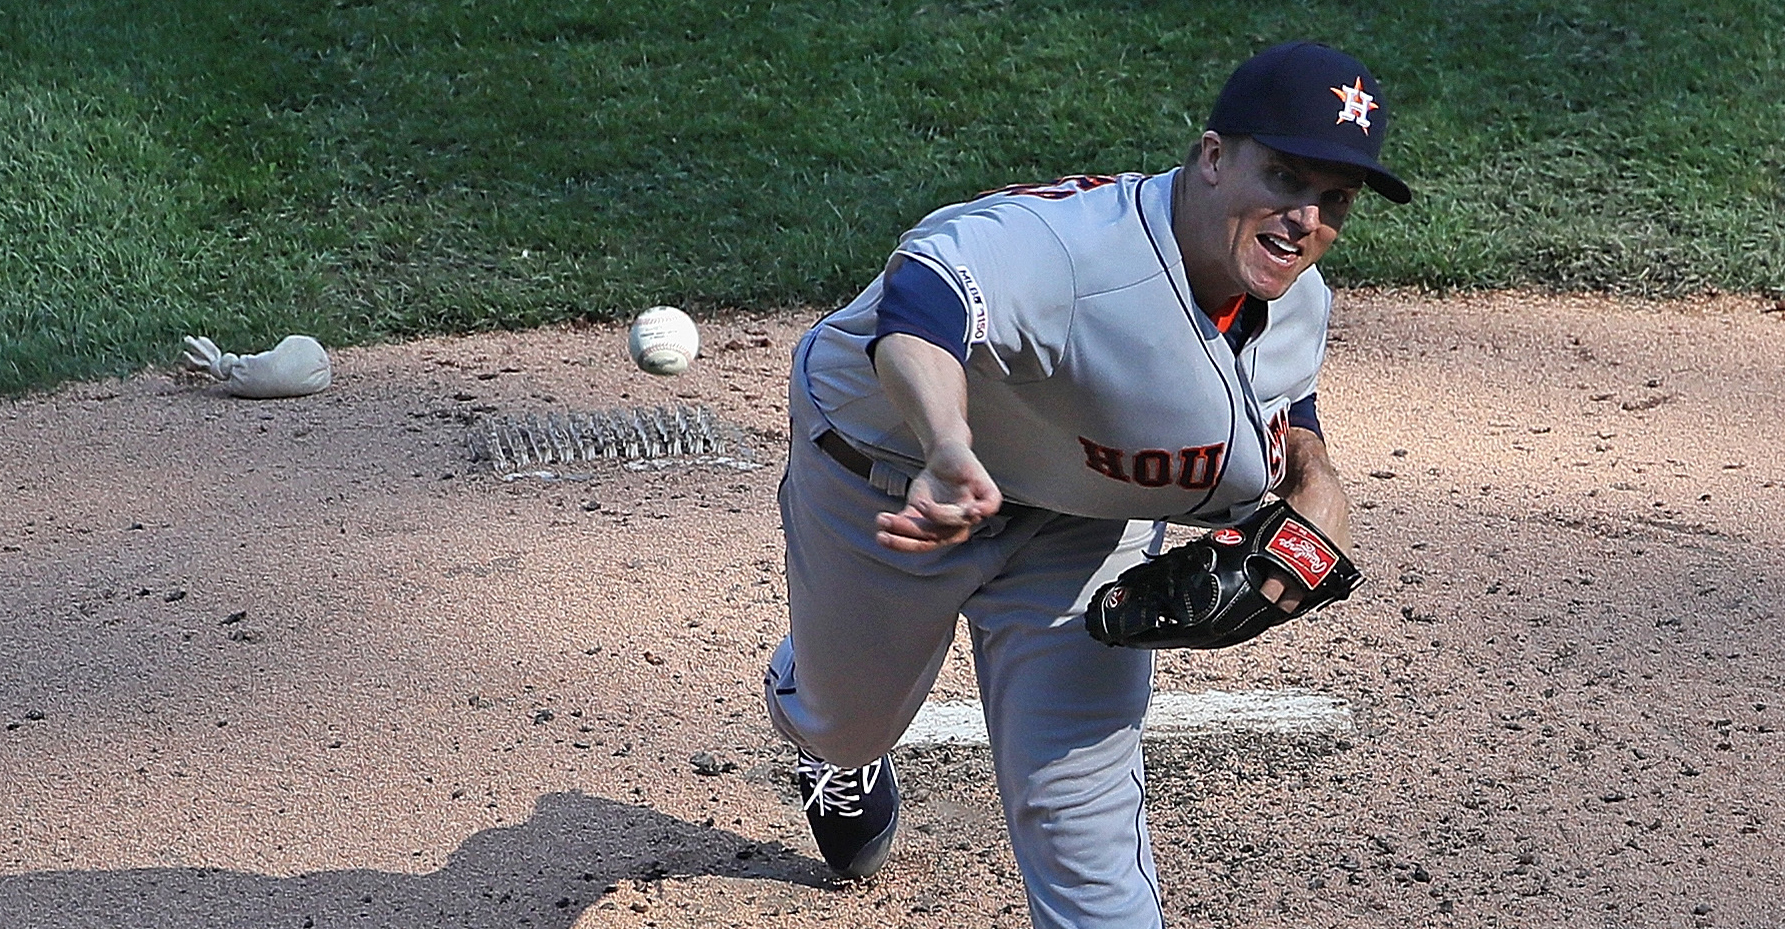 Astros, Zack Greinke beat White Sox in first game of doubleheader